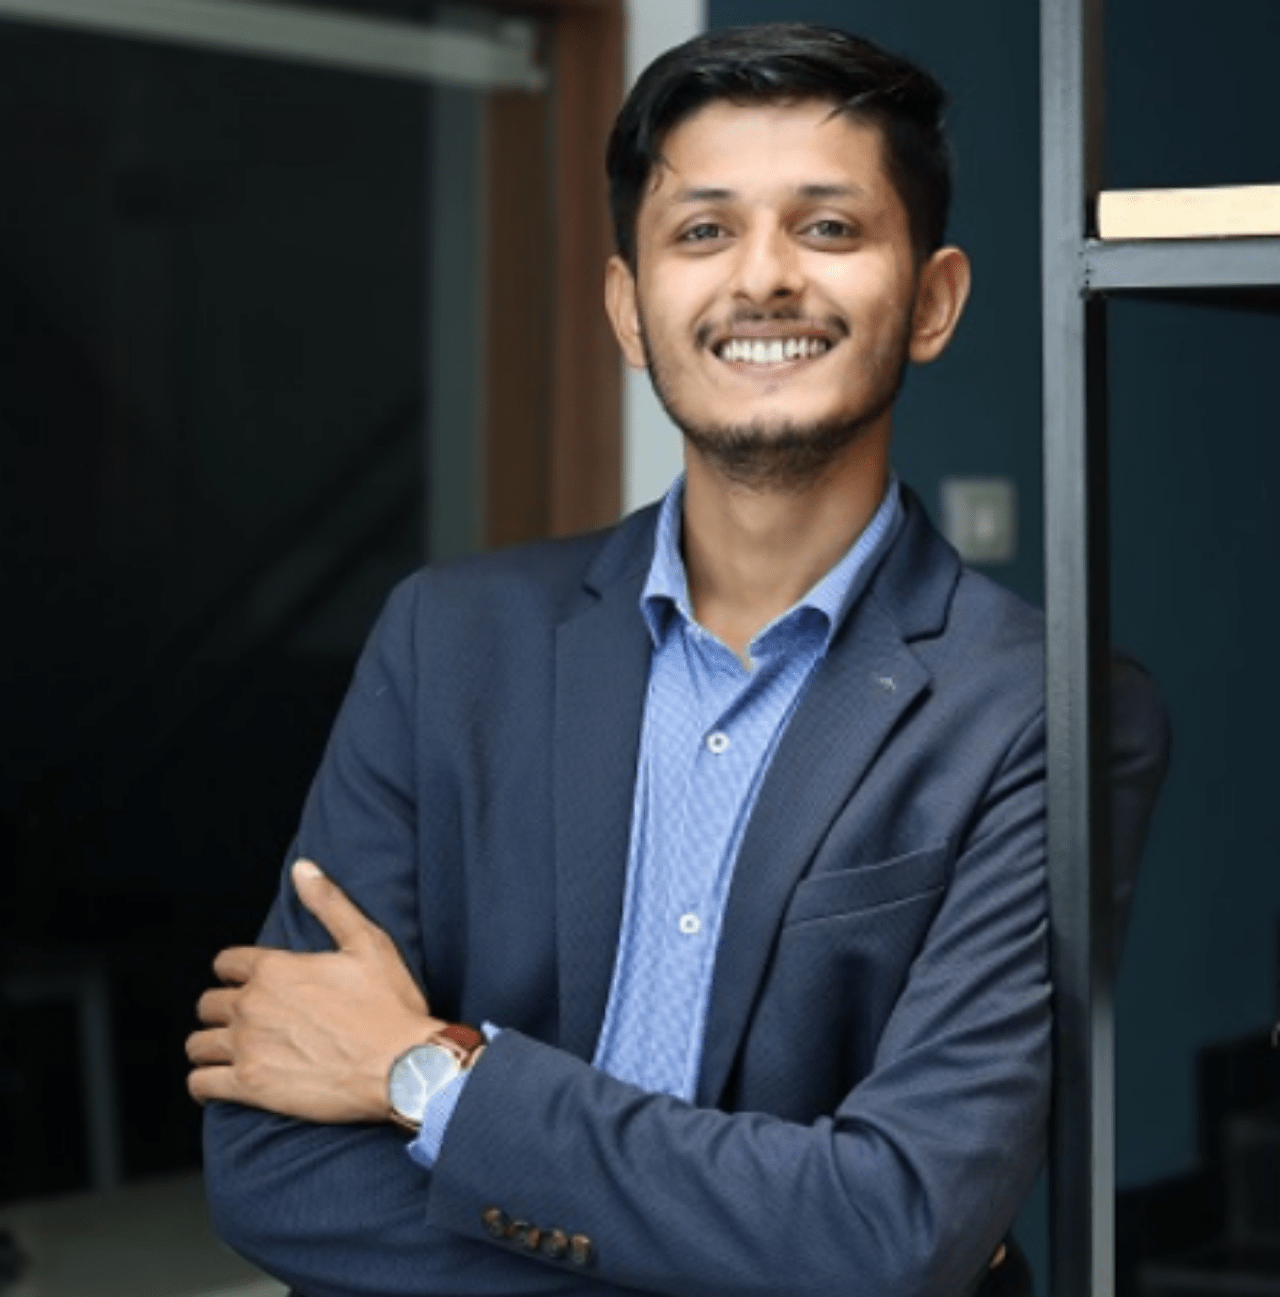 Anubhav Dubey Biography: Story, Net Worth, Age, Wife, Children, Family, House, Interesting facts and everything about Chai Sutta Bar Founder